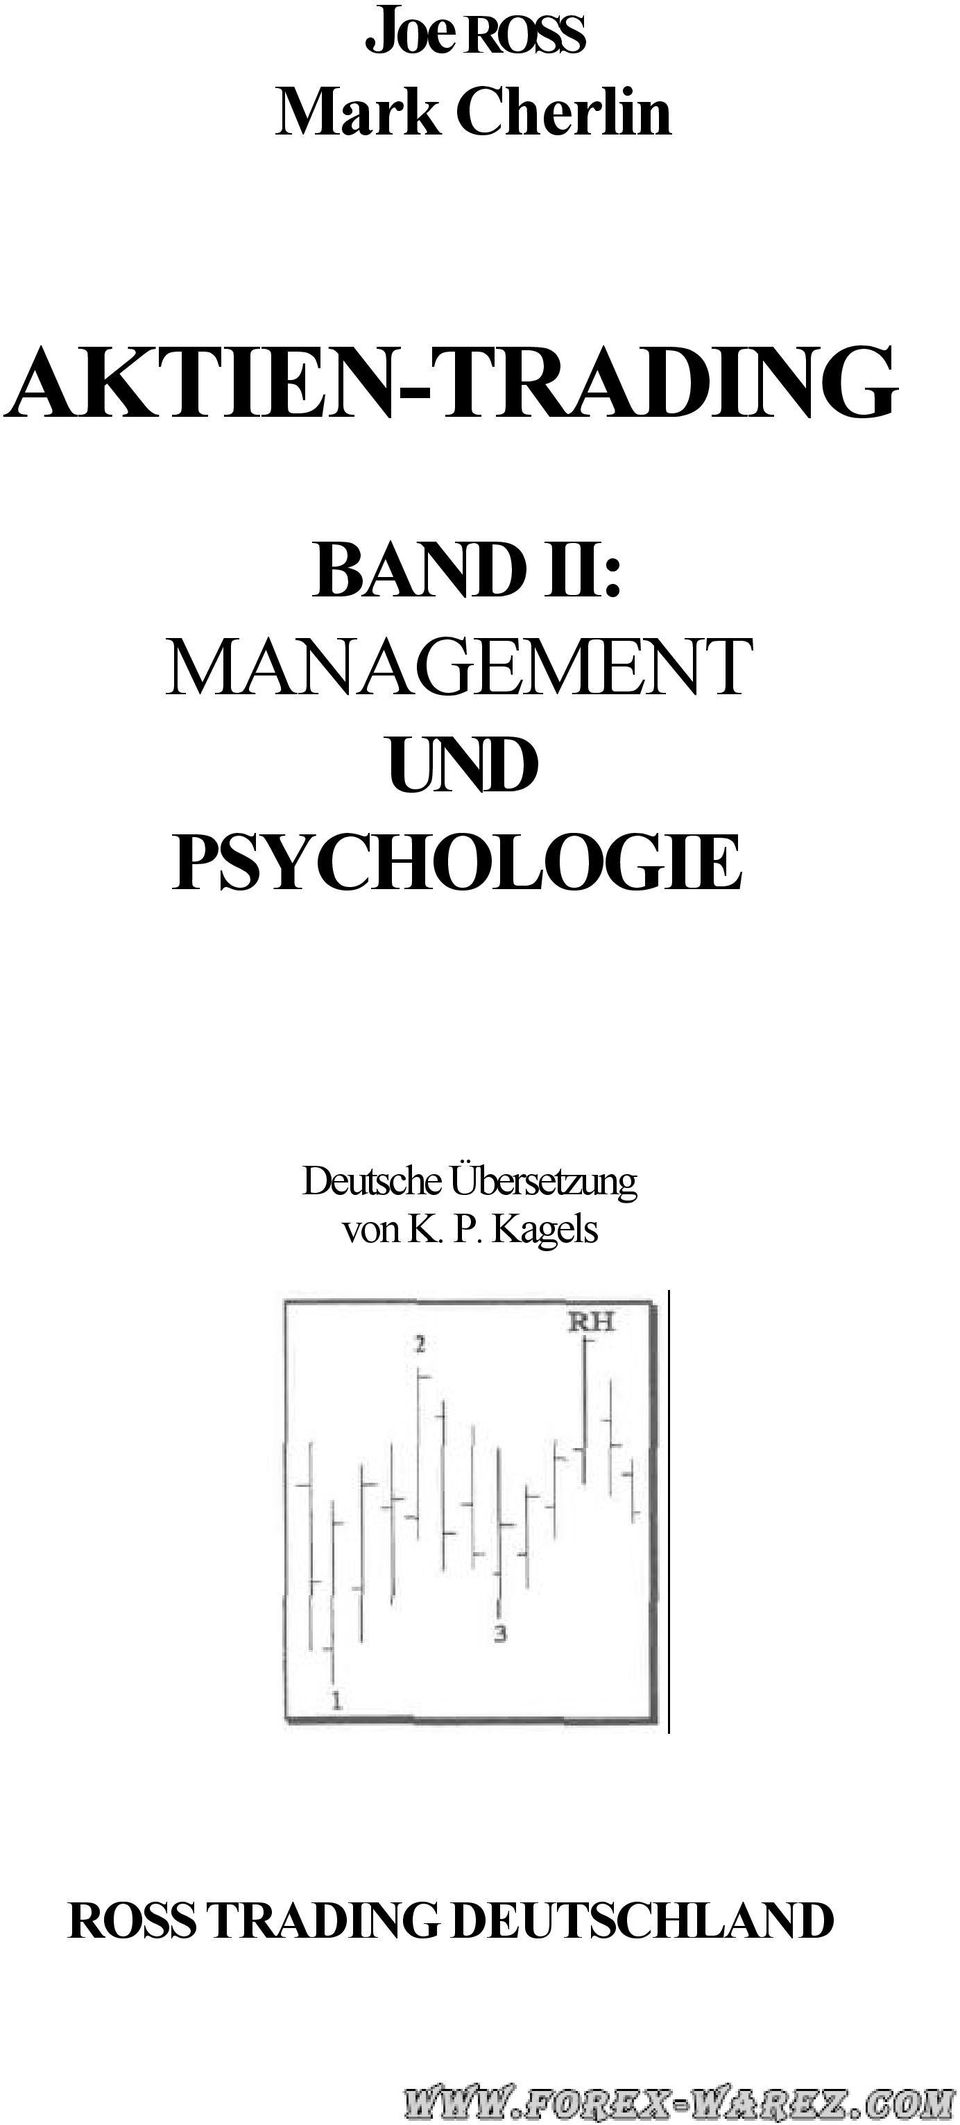 MANAGEMENT UND PSYCHOLOGIE